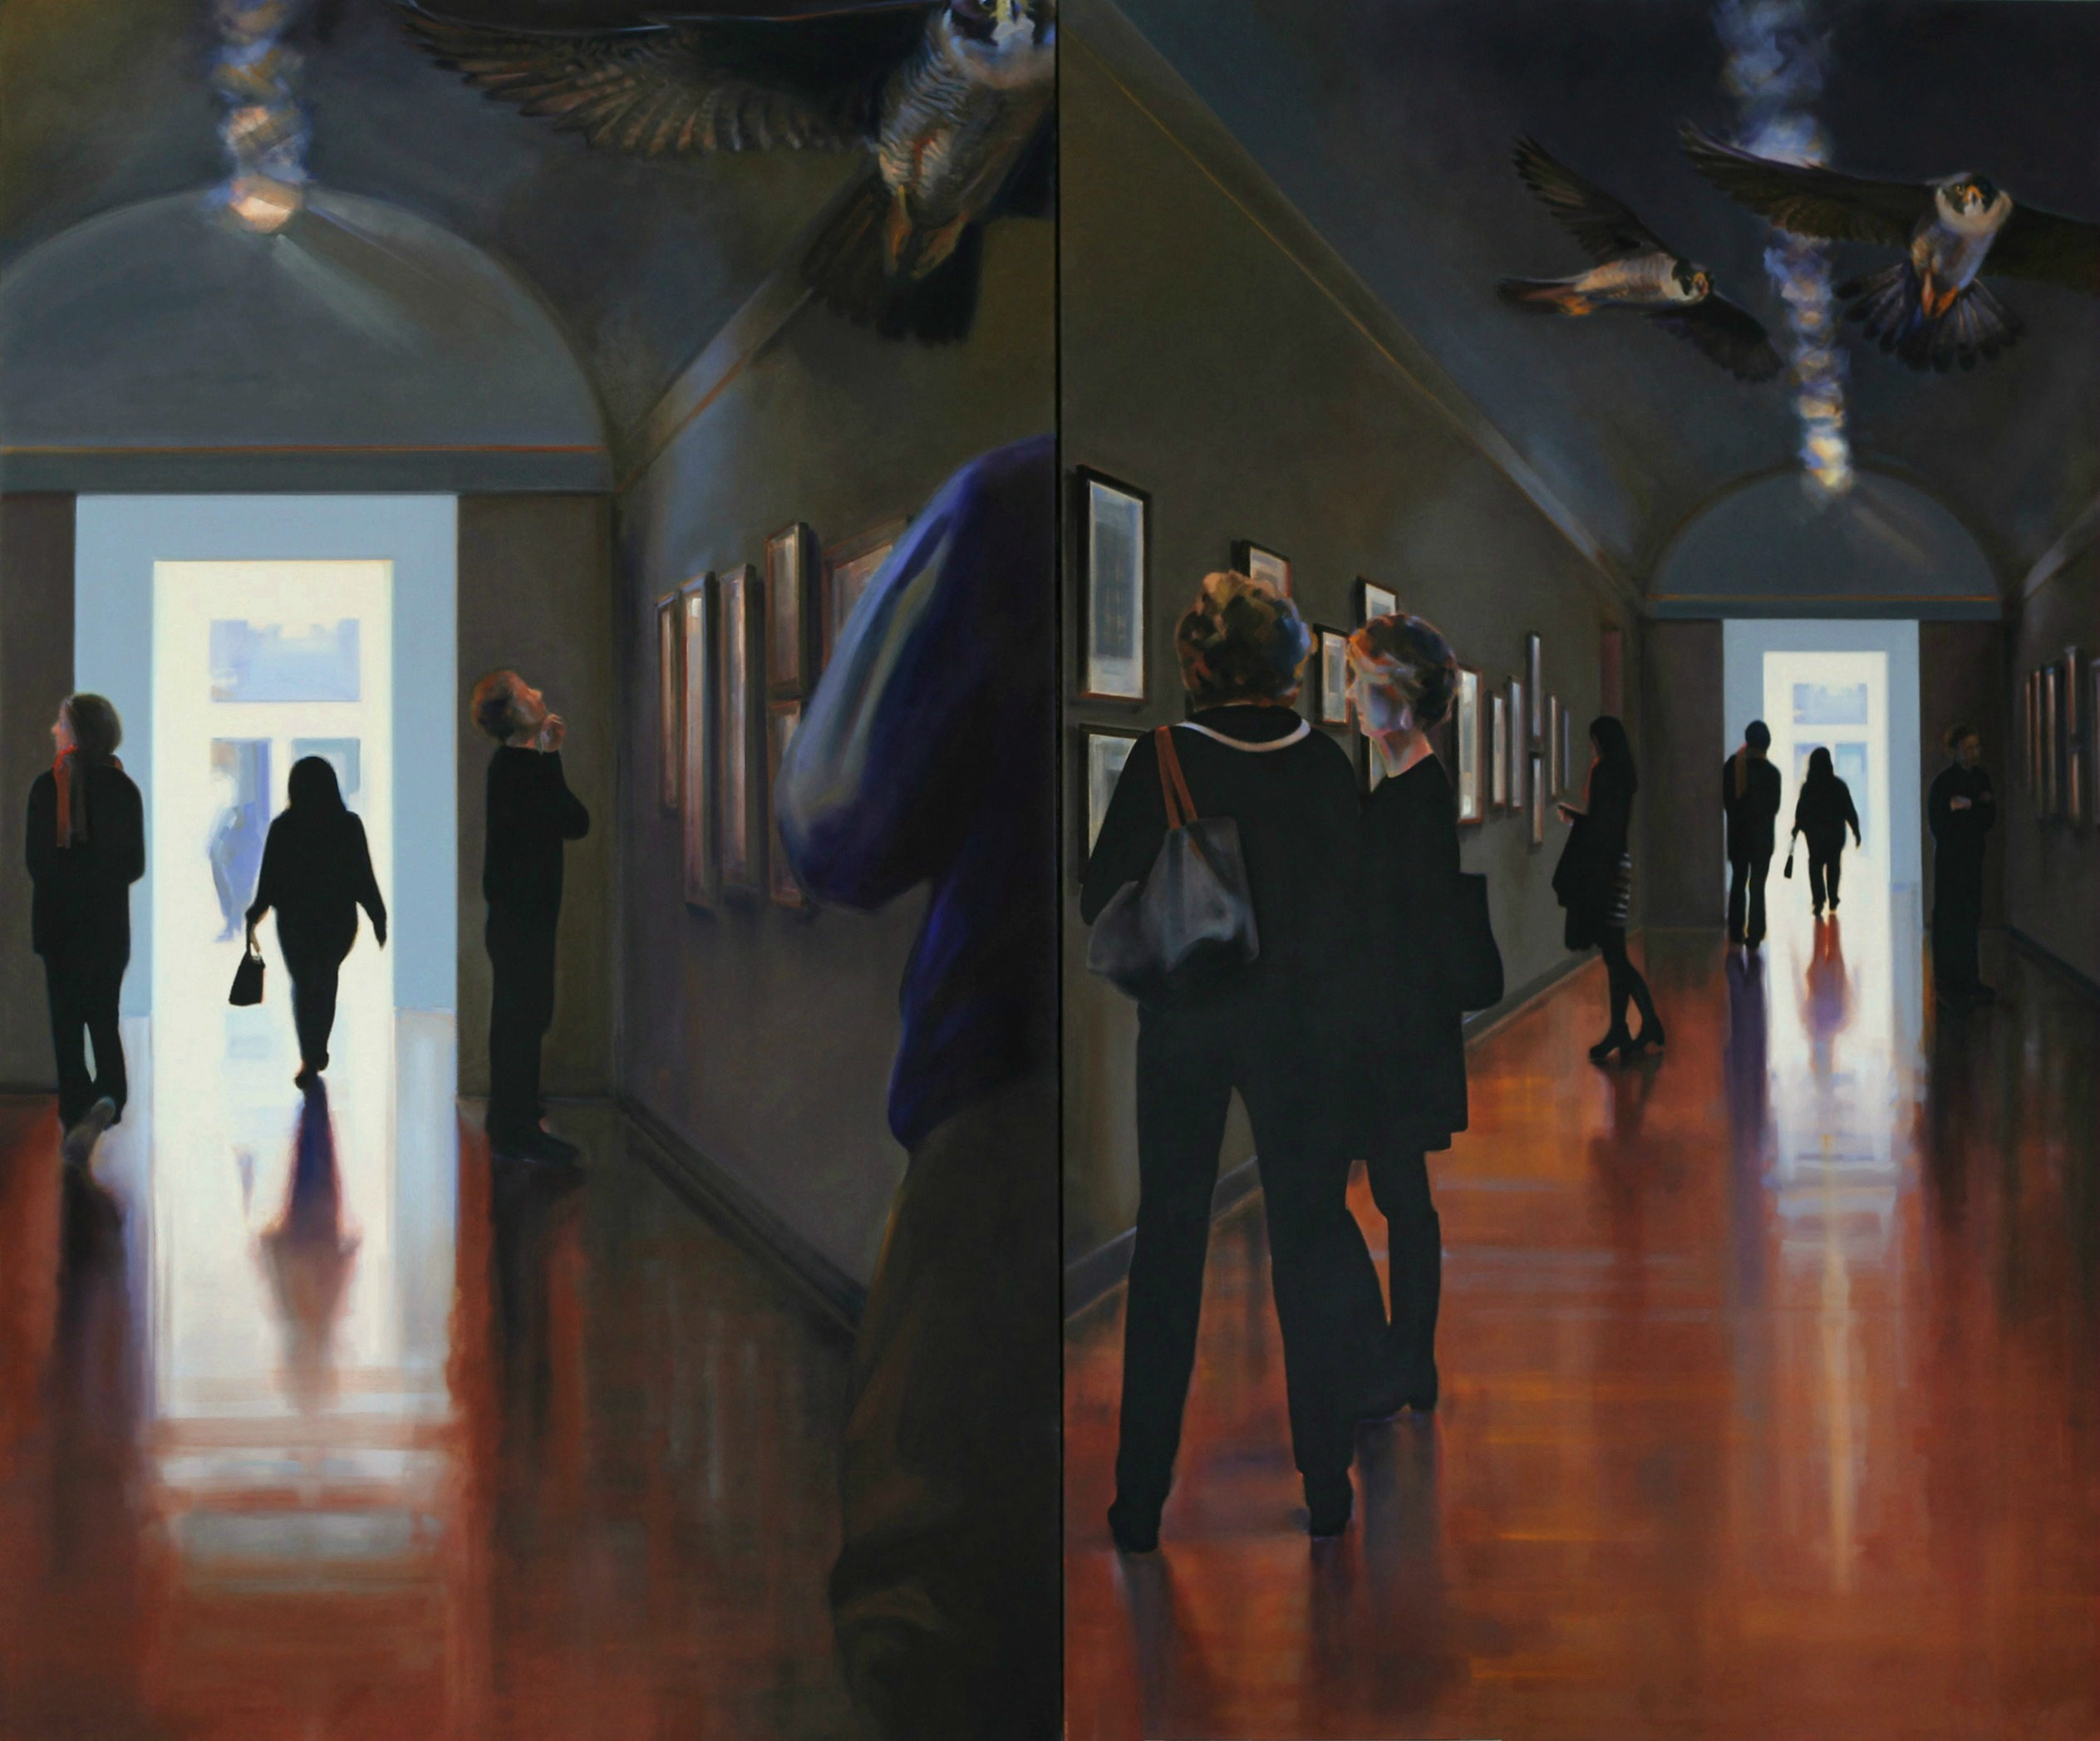 Susan White Brown's oil and canvas work inspired by the cultural history presented in the Museum of Fine Arts, Boston.